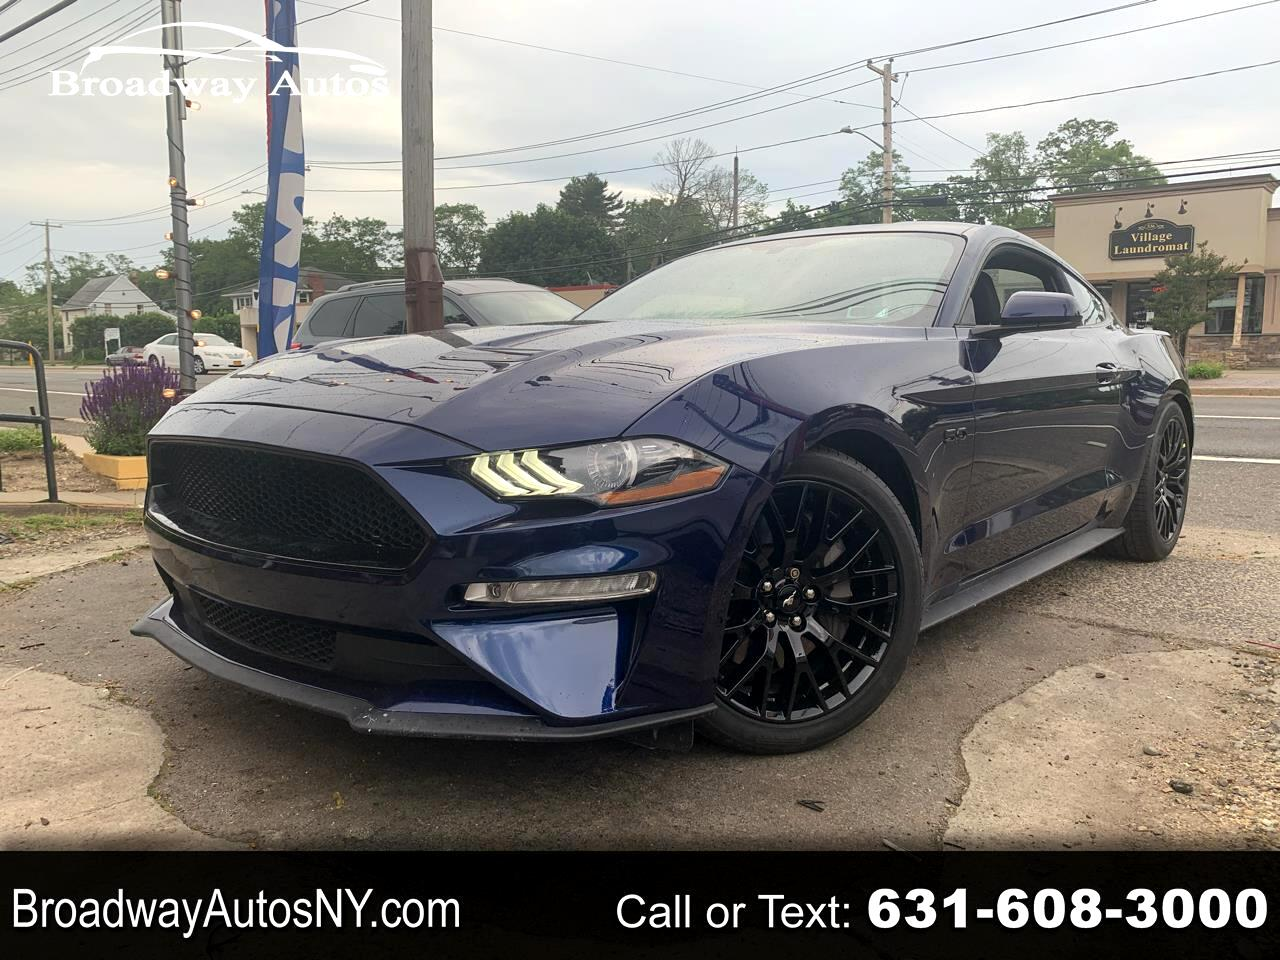 Ford Mustang 2dr Coupe GT 2019